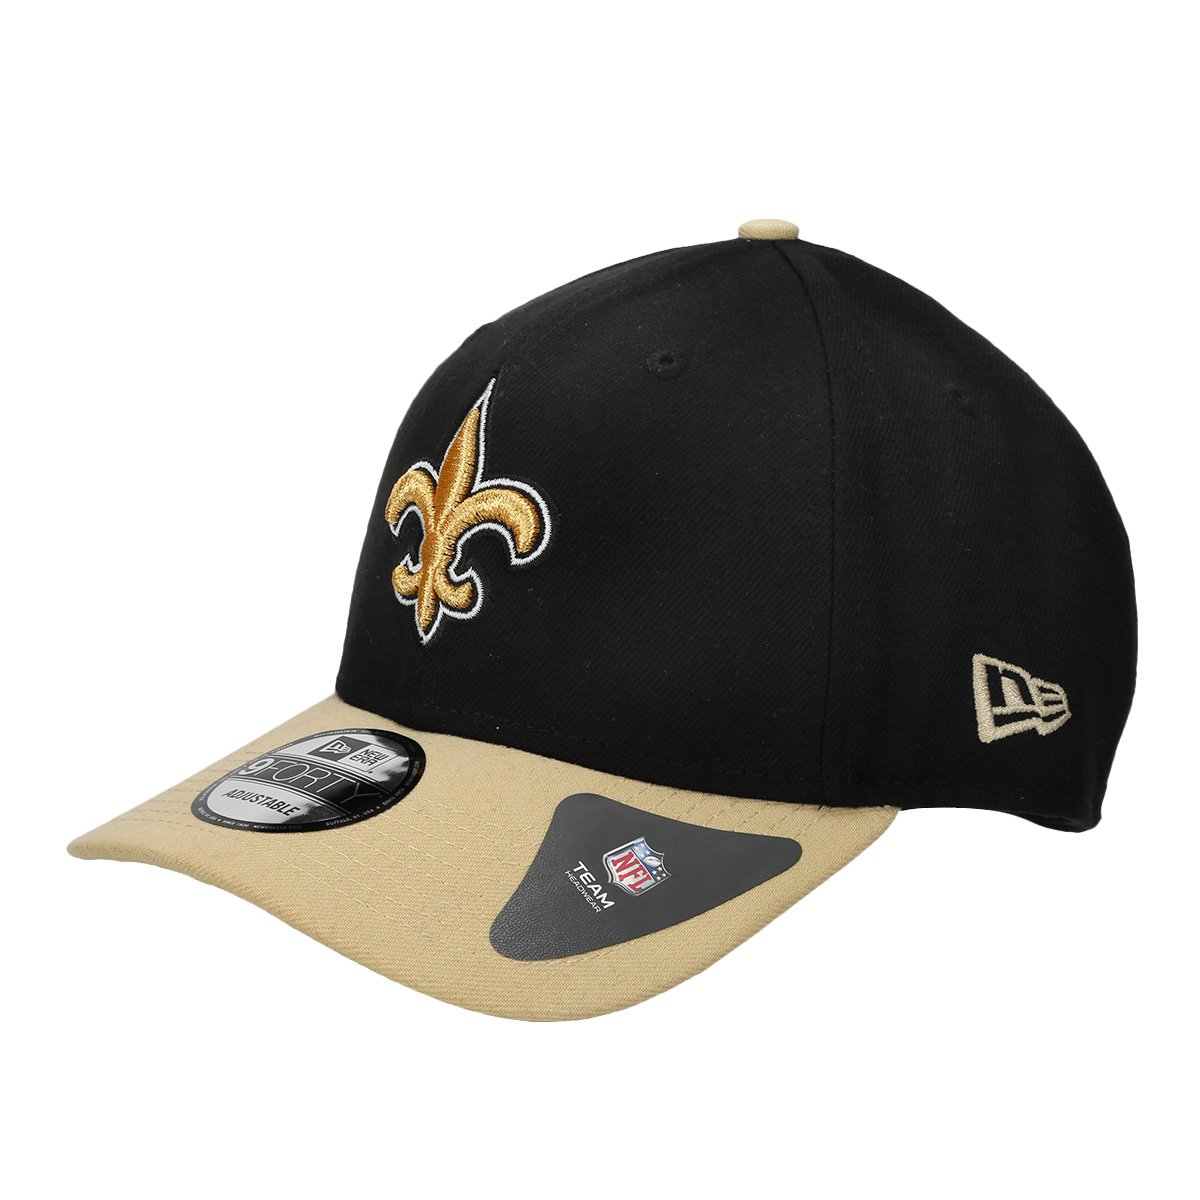 Boné New Orleans Saints New Era Aba Curva NFL 940 Hc Sn Basic